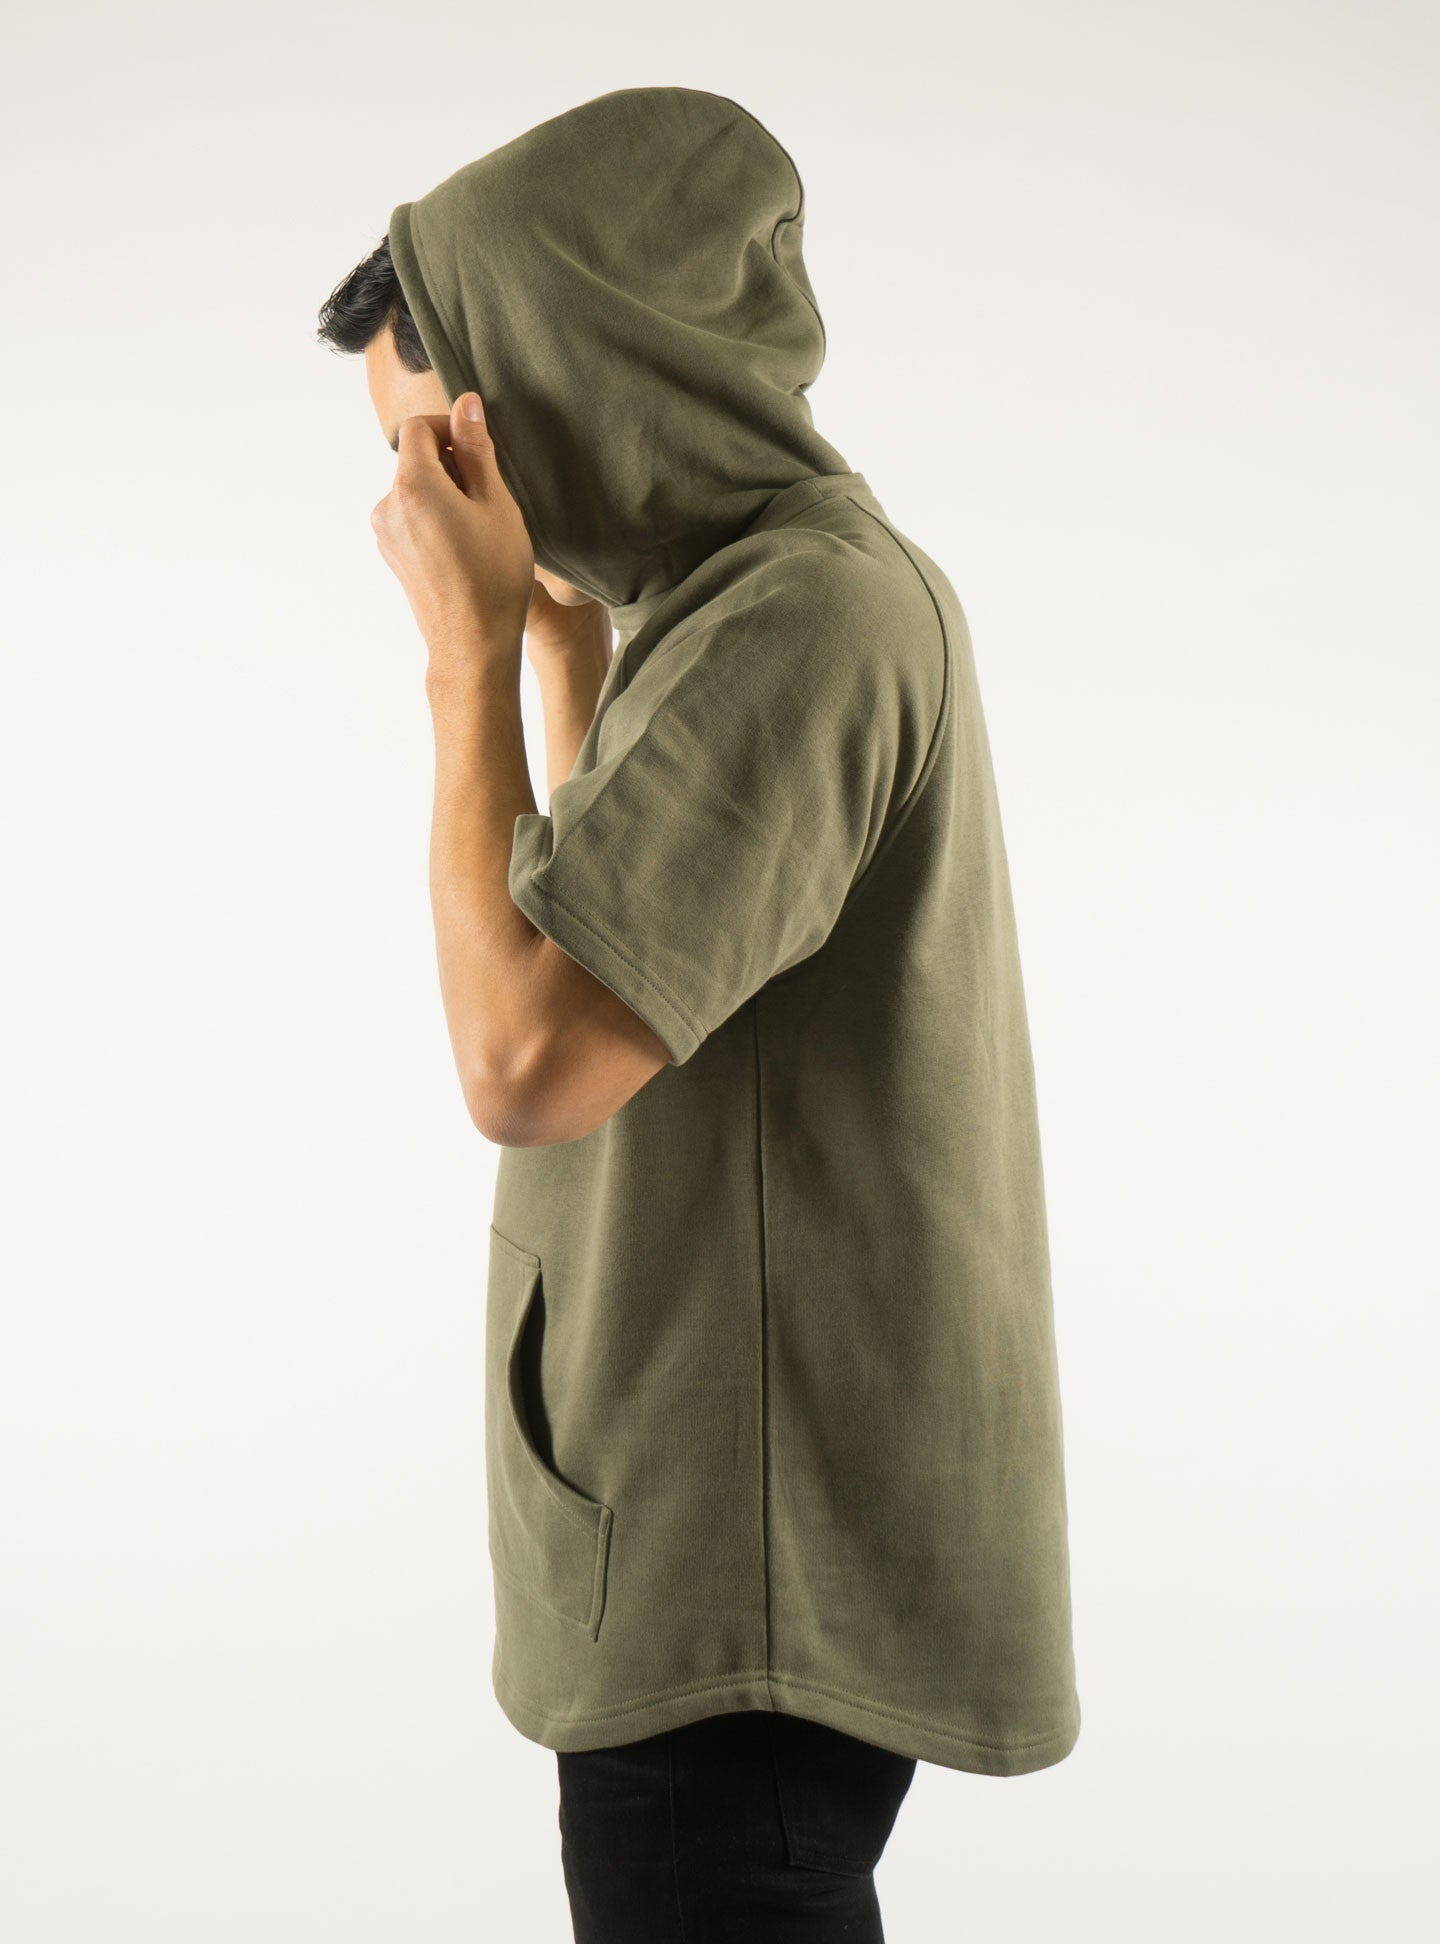 Akomplice VSOP -  West S/S Men's Hoodie, Military Green - The Giant Peach - 4